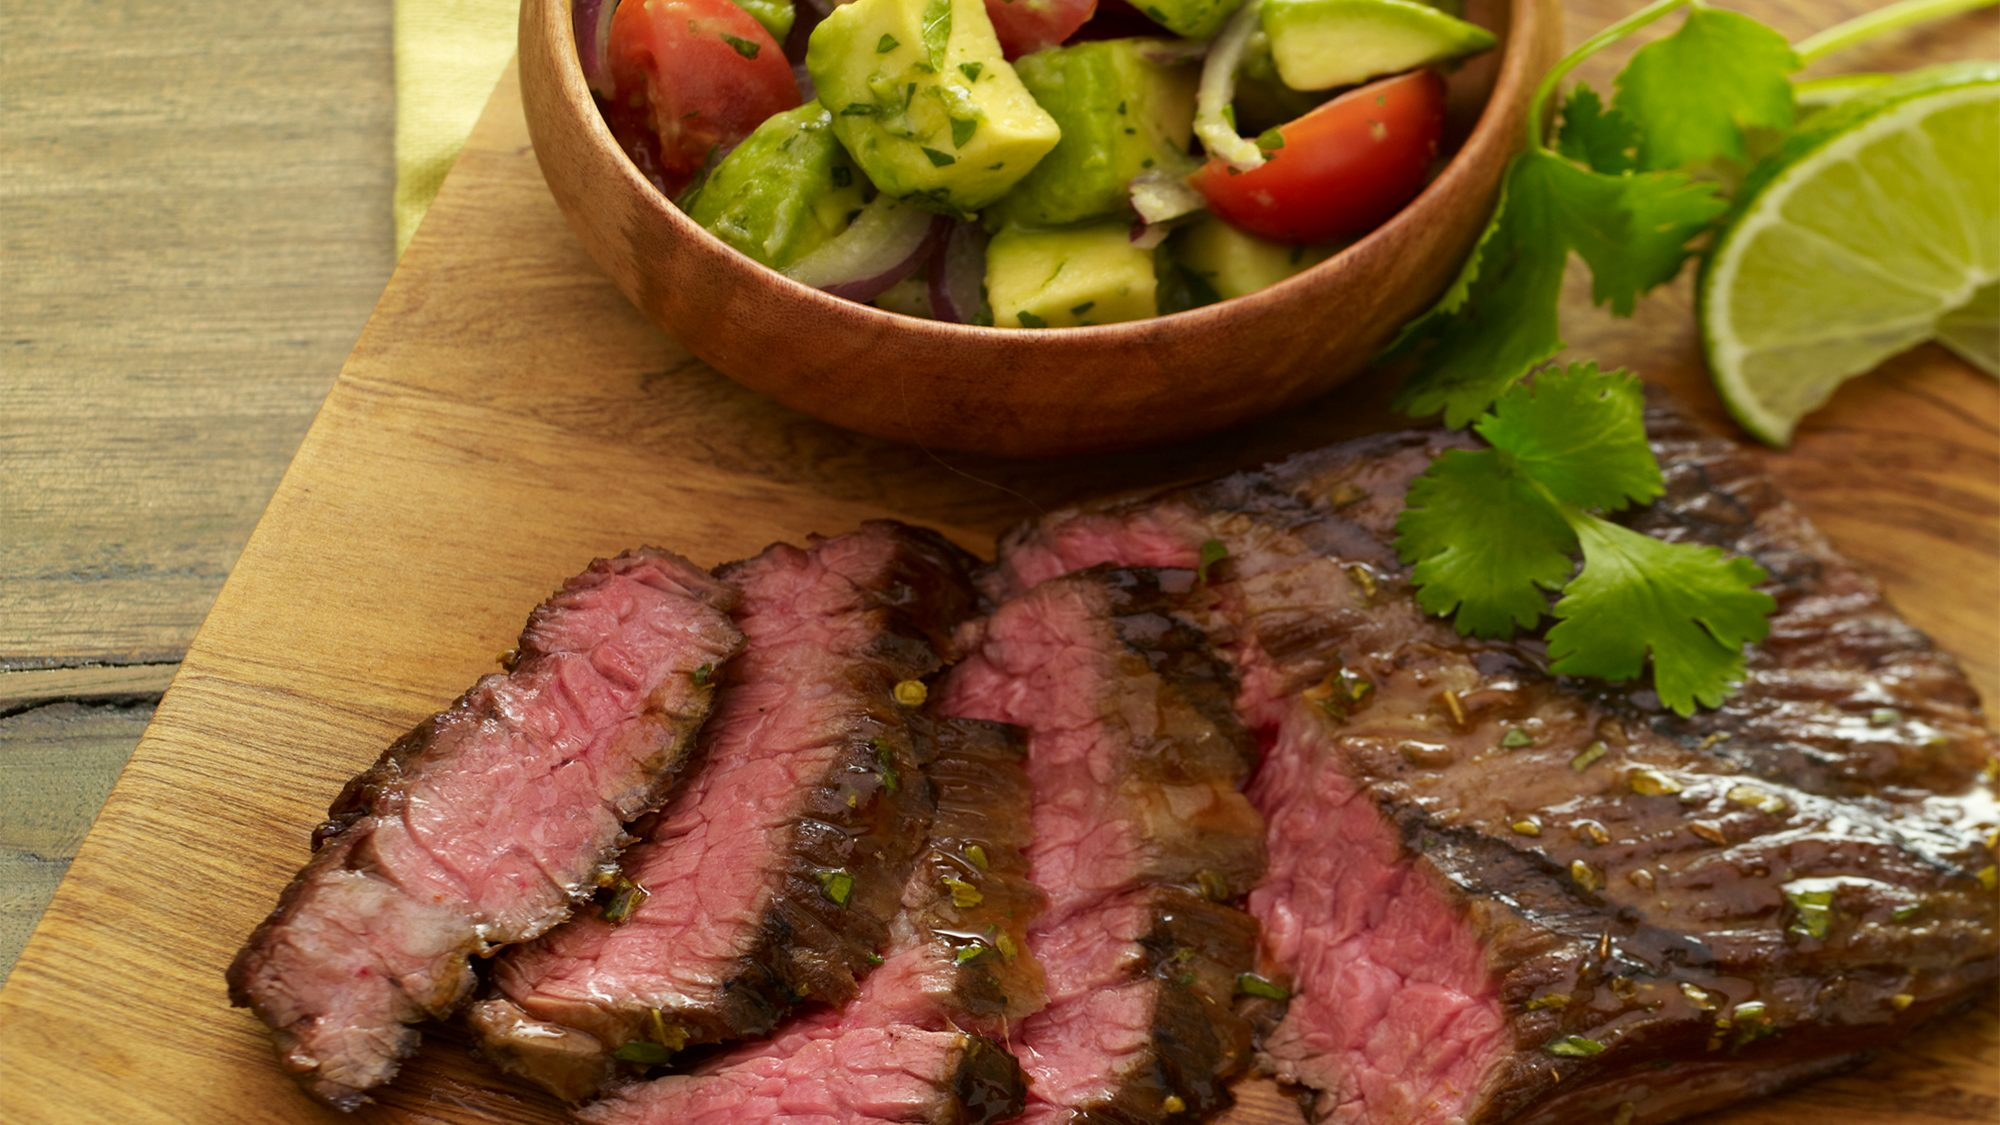 tequila-lime-steak-with-avocado-chopped-salad.jpg